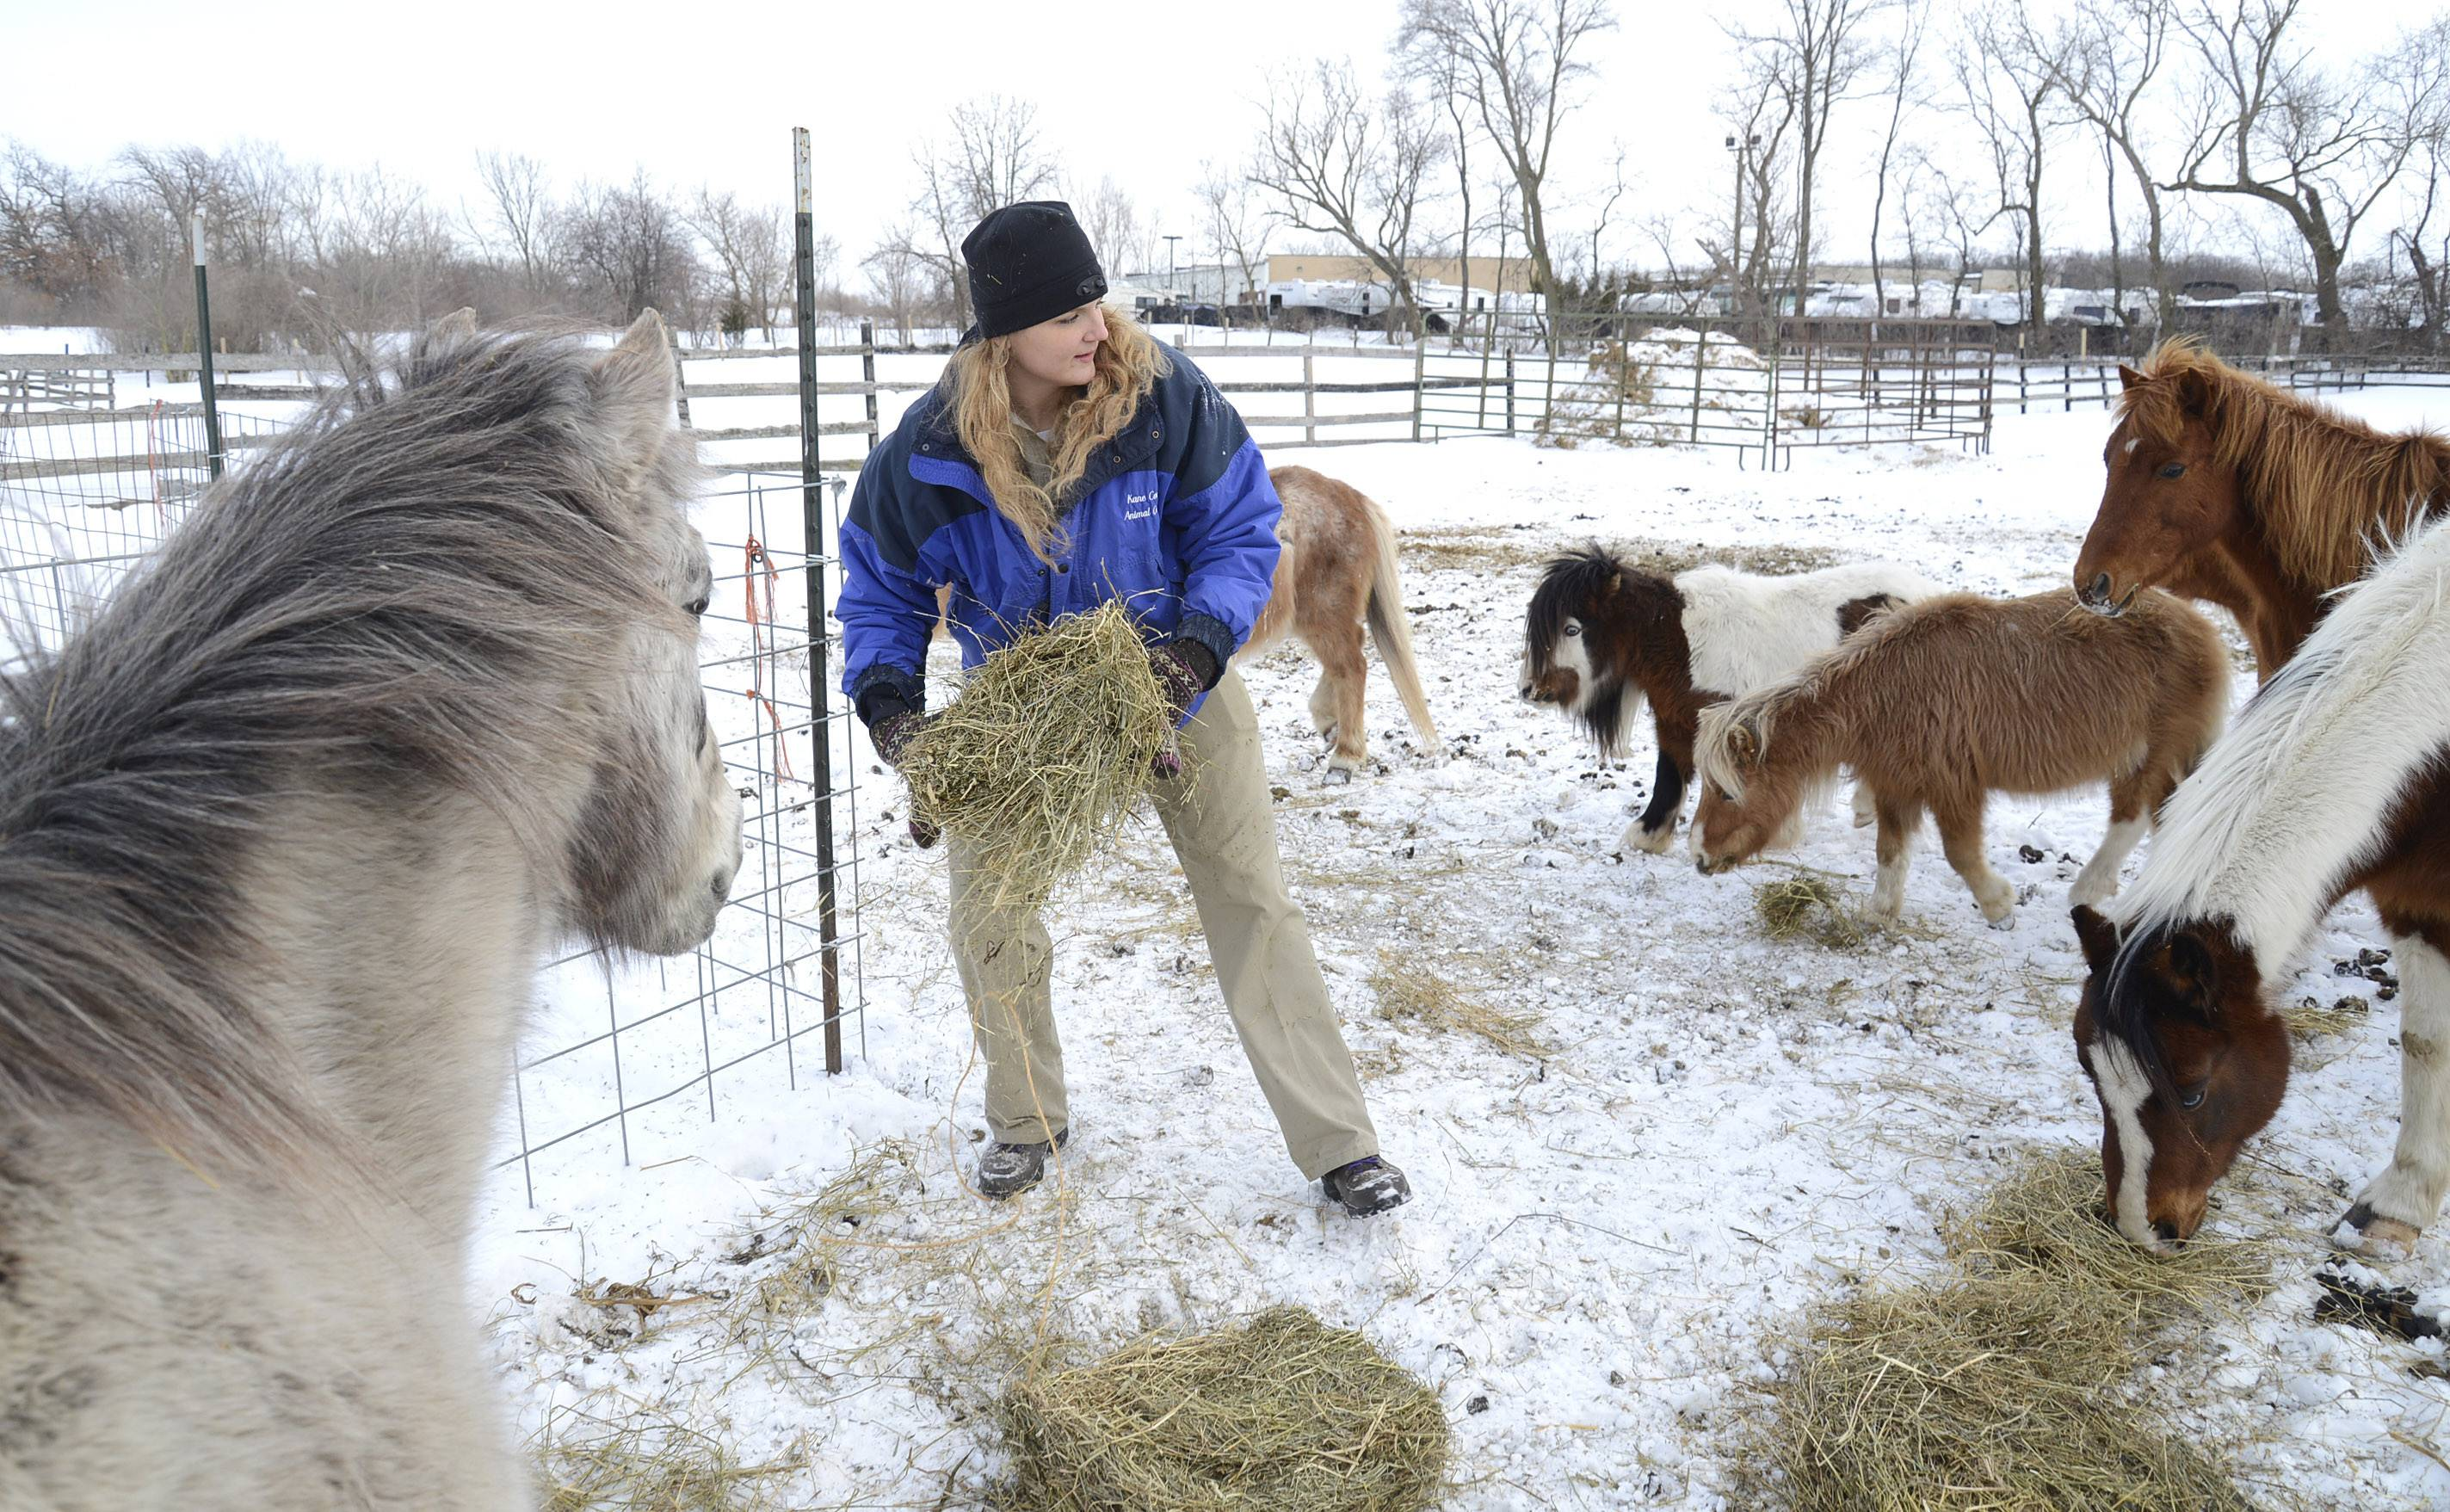 Animal County Animal Control Warden Brianna Leland feeds hay to animals in unincorporated Hampshire on Wednesday. They had been feed several times and each time she walked in the animals immediately approached her for more. Stacey Fiebelkorn, of Elgin, has been charged with animal cruelty after Kane County Animal Control authorities discovered several dead animals, including a pony, donkey, goats, chickens, and more at the address. A dead horse and horse fetus were found at the other address she uses in Maple Park.